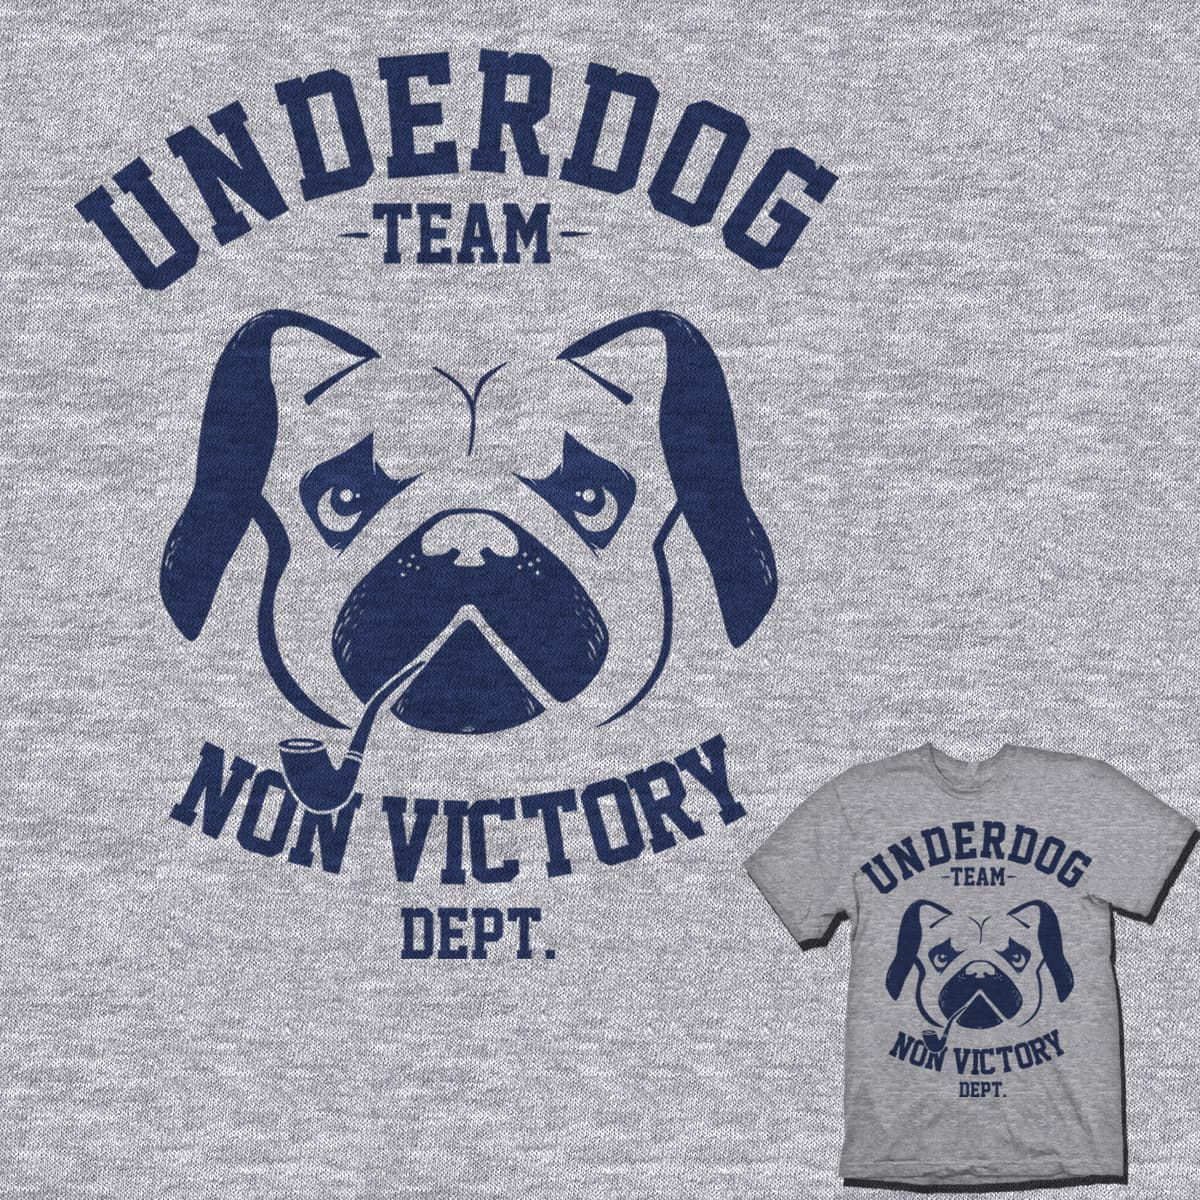 UNDERDOG TEAM by kuli_grafis on Threadless